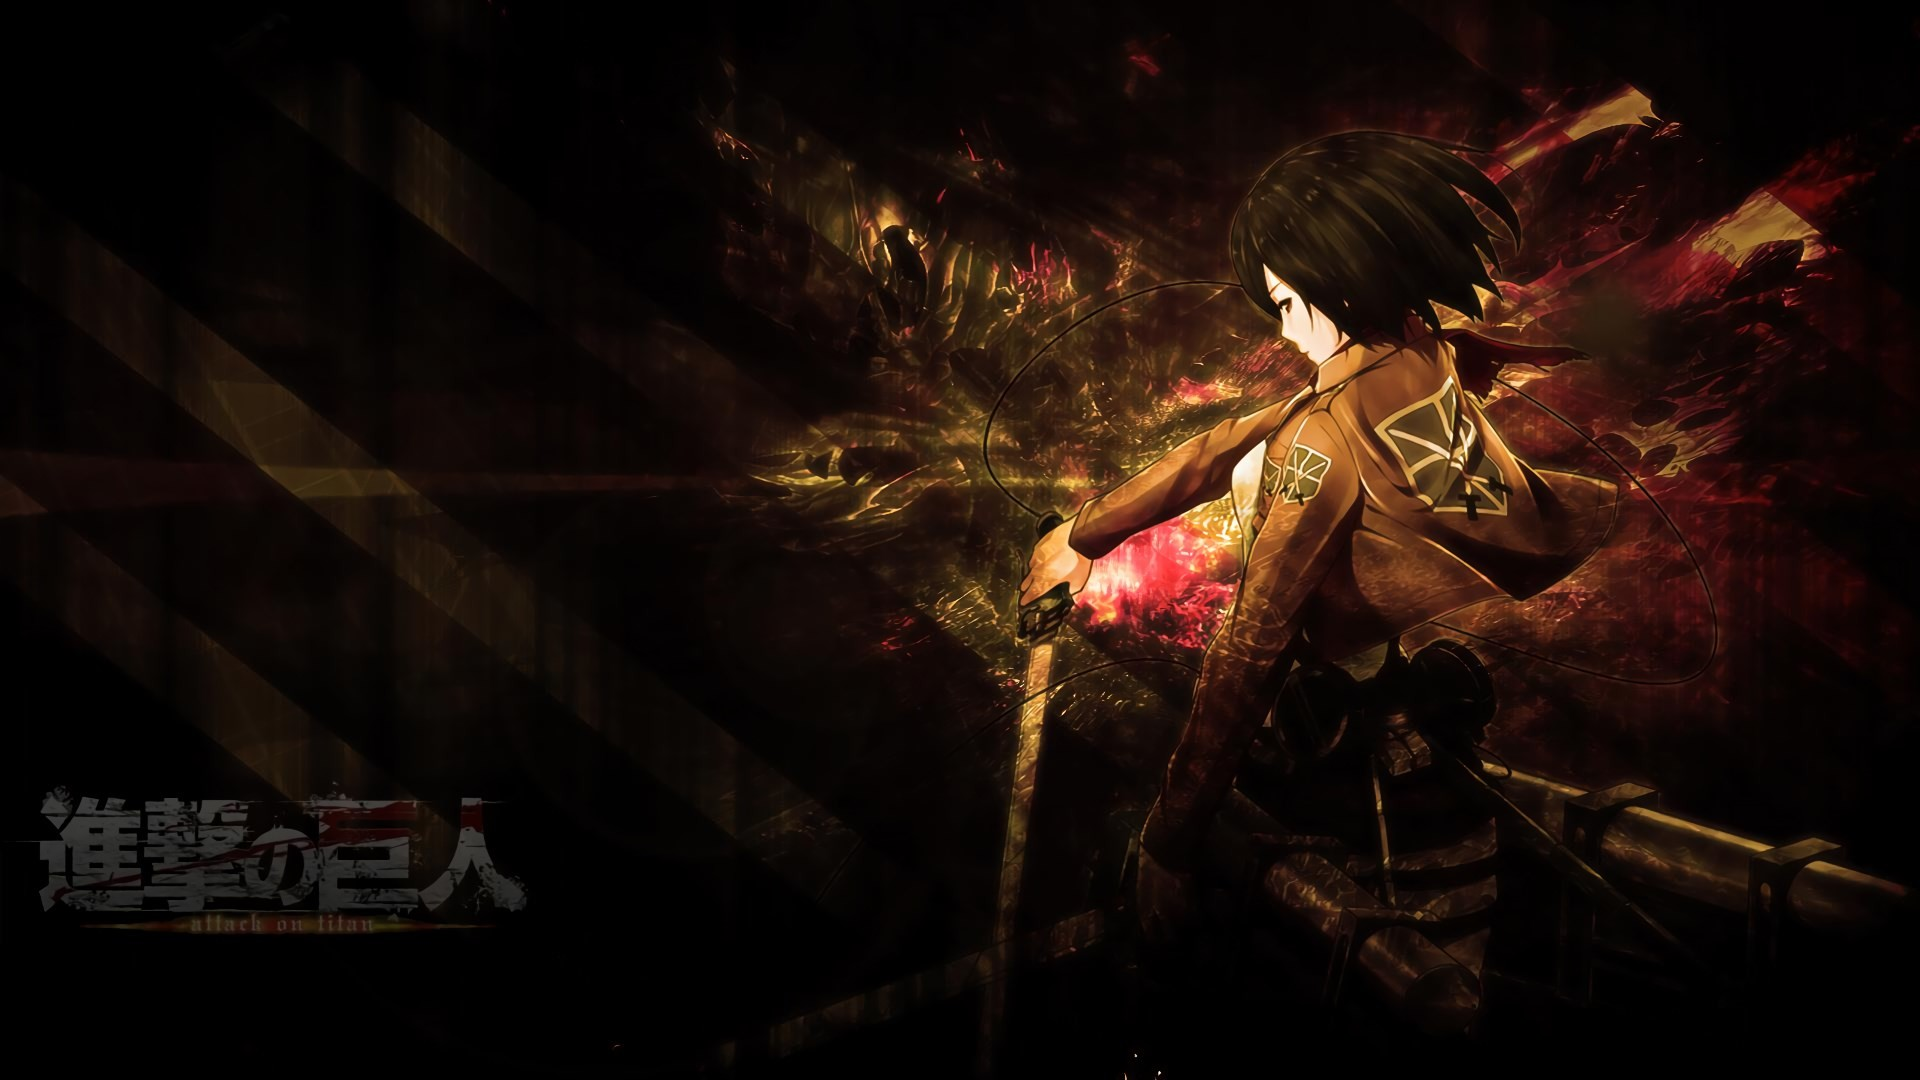 attack on titan wallpaper for mac computers – attack on titan category